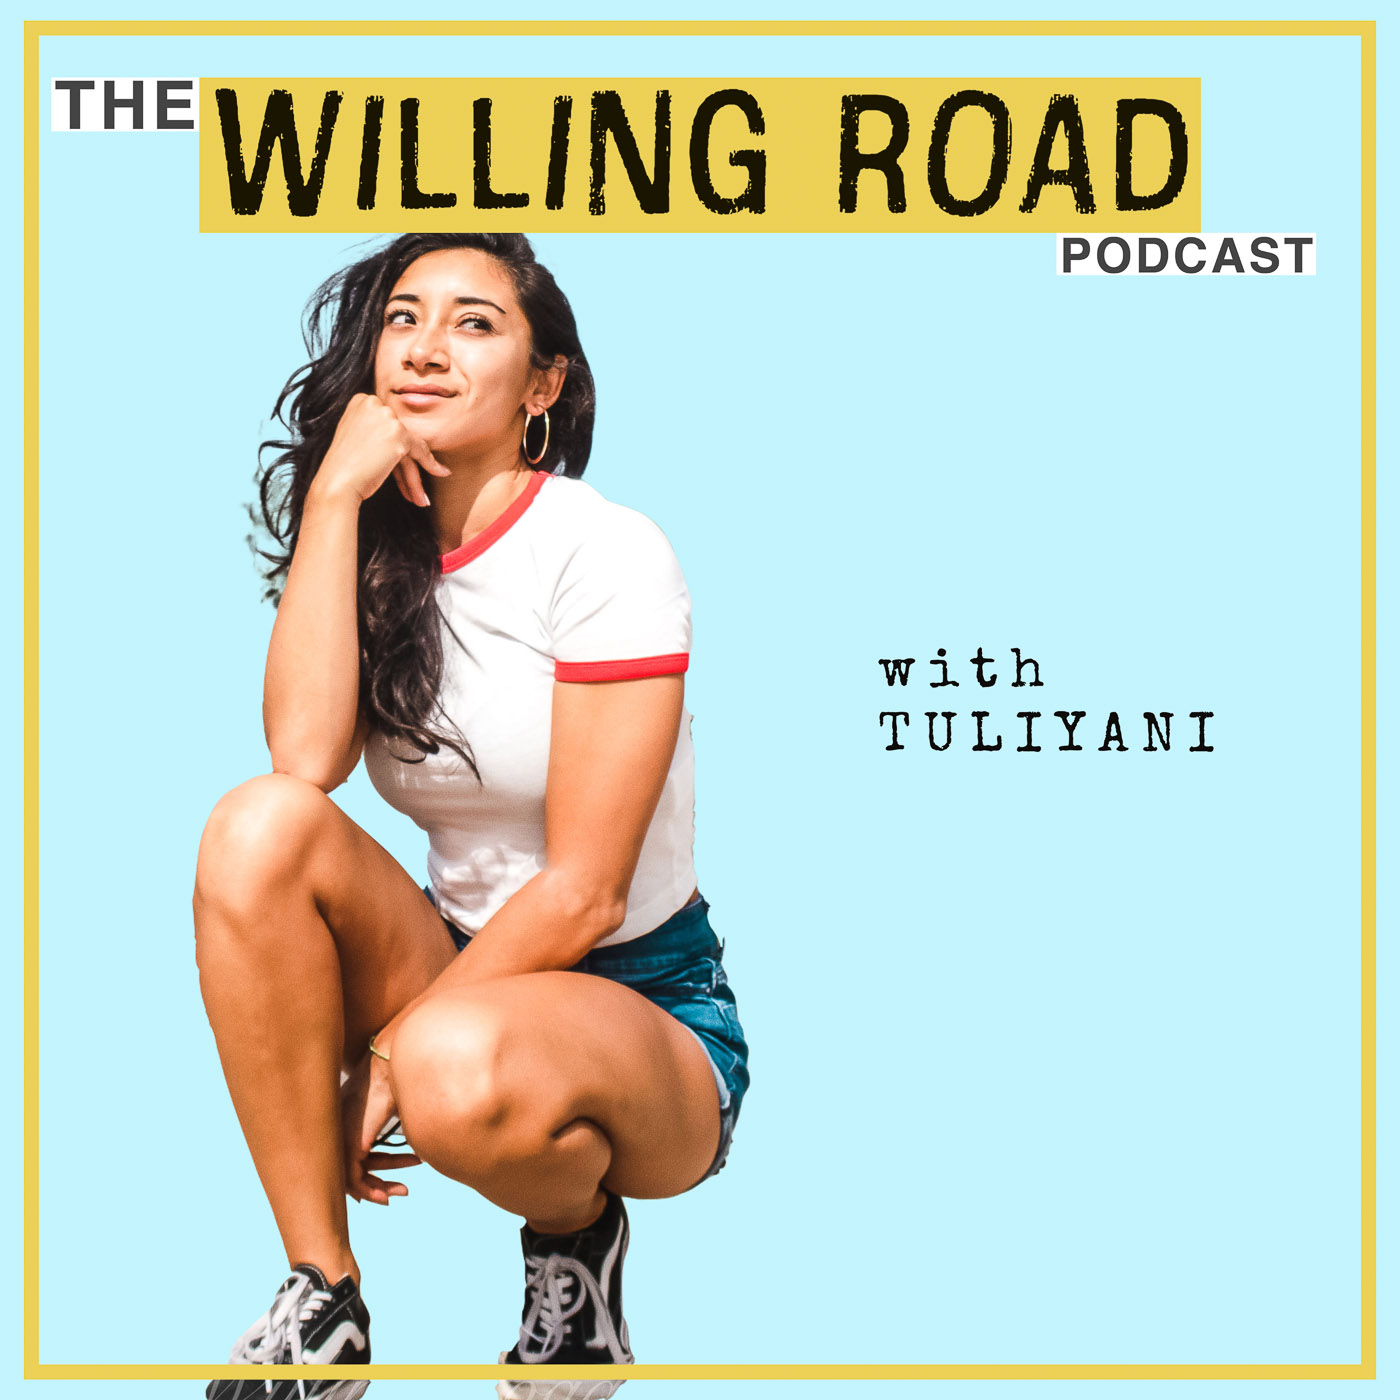 Artwork for podcast The Willing Road